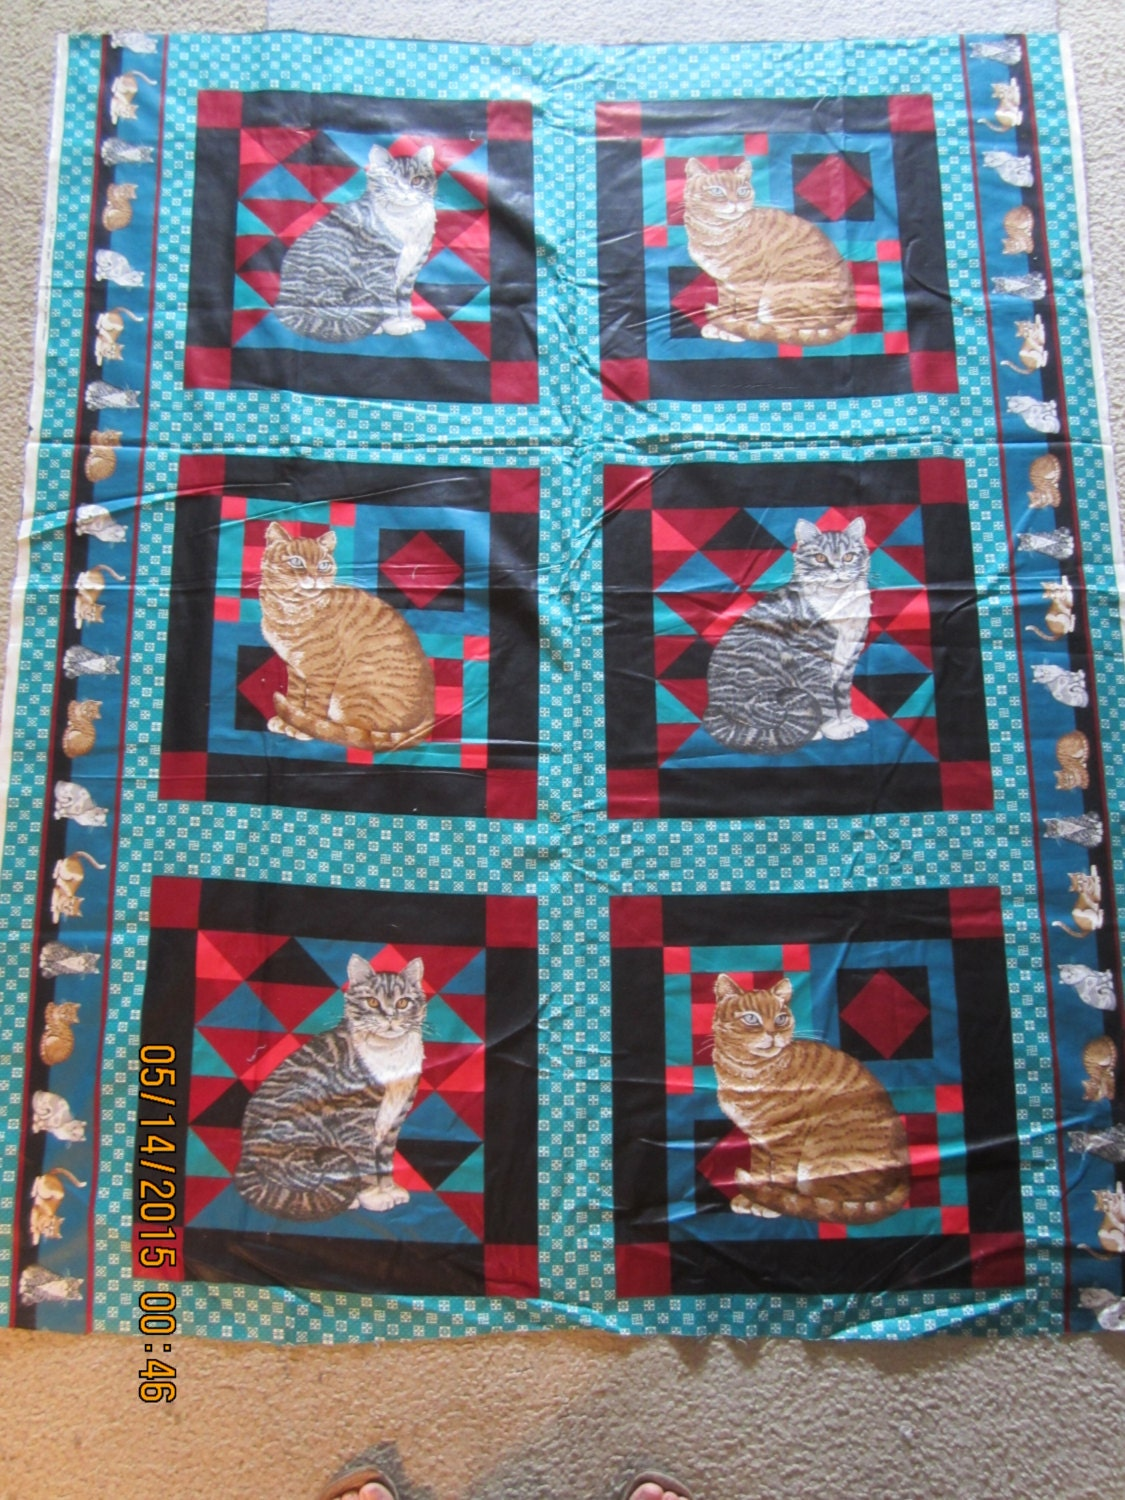 Sale Rare Cat Pillows Or Cheater Quilt Fabric Panel Vip